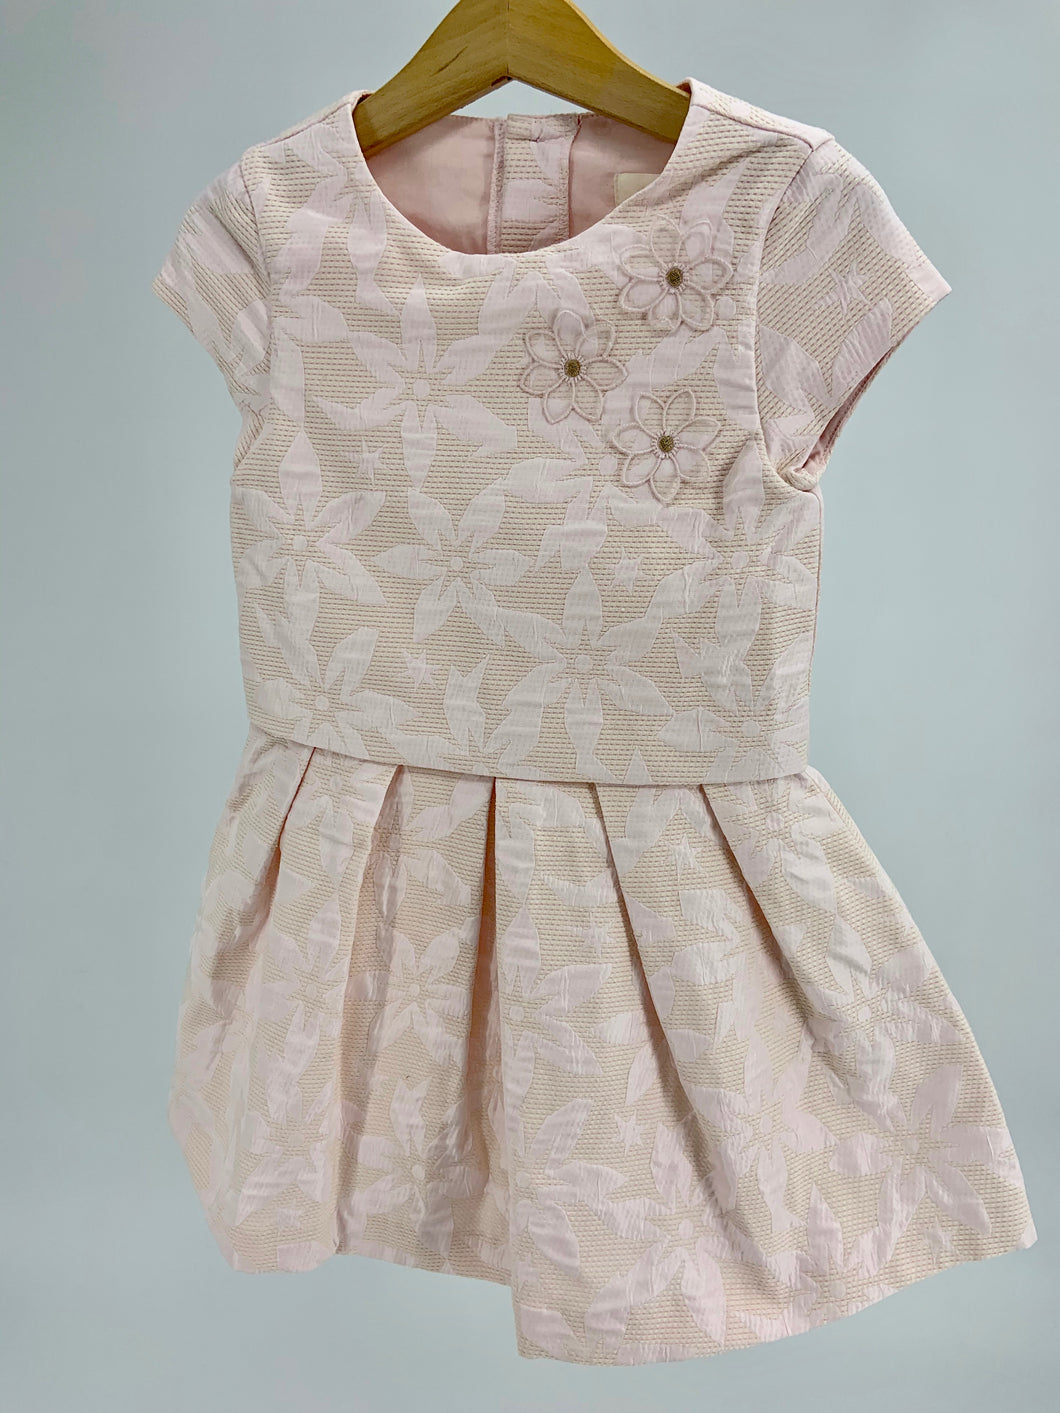 Catimini Light Pink Floral Embroidery Formal Dress